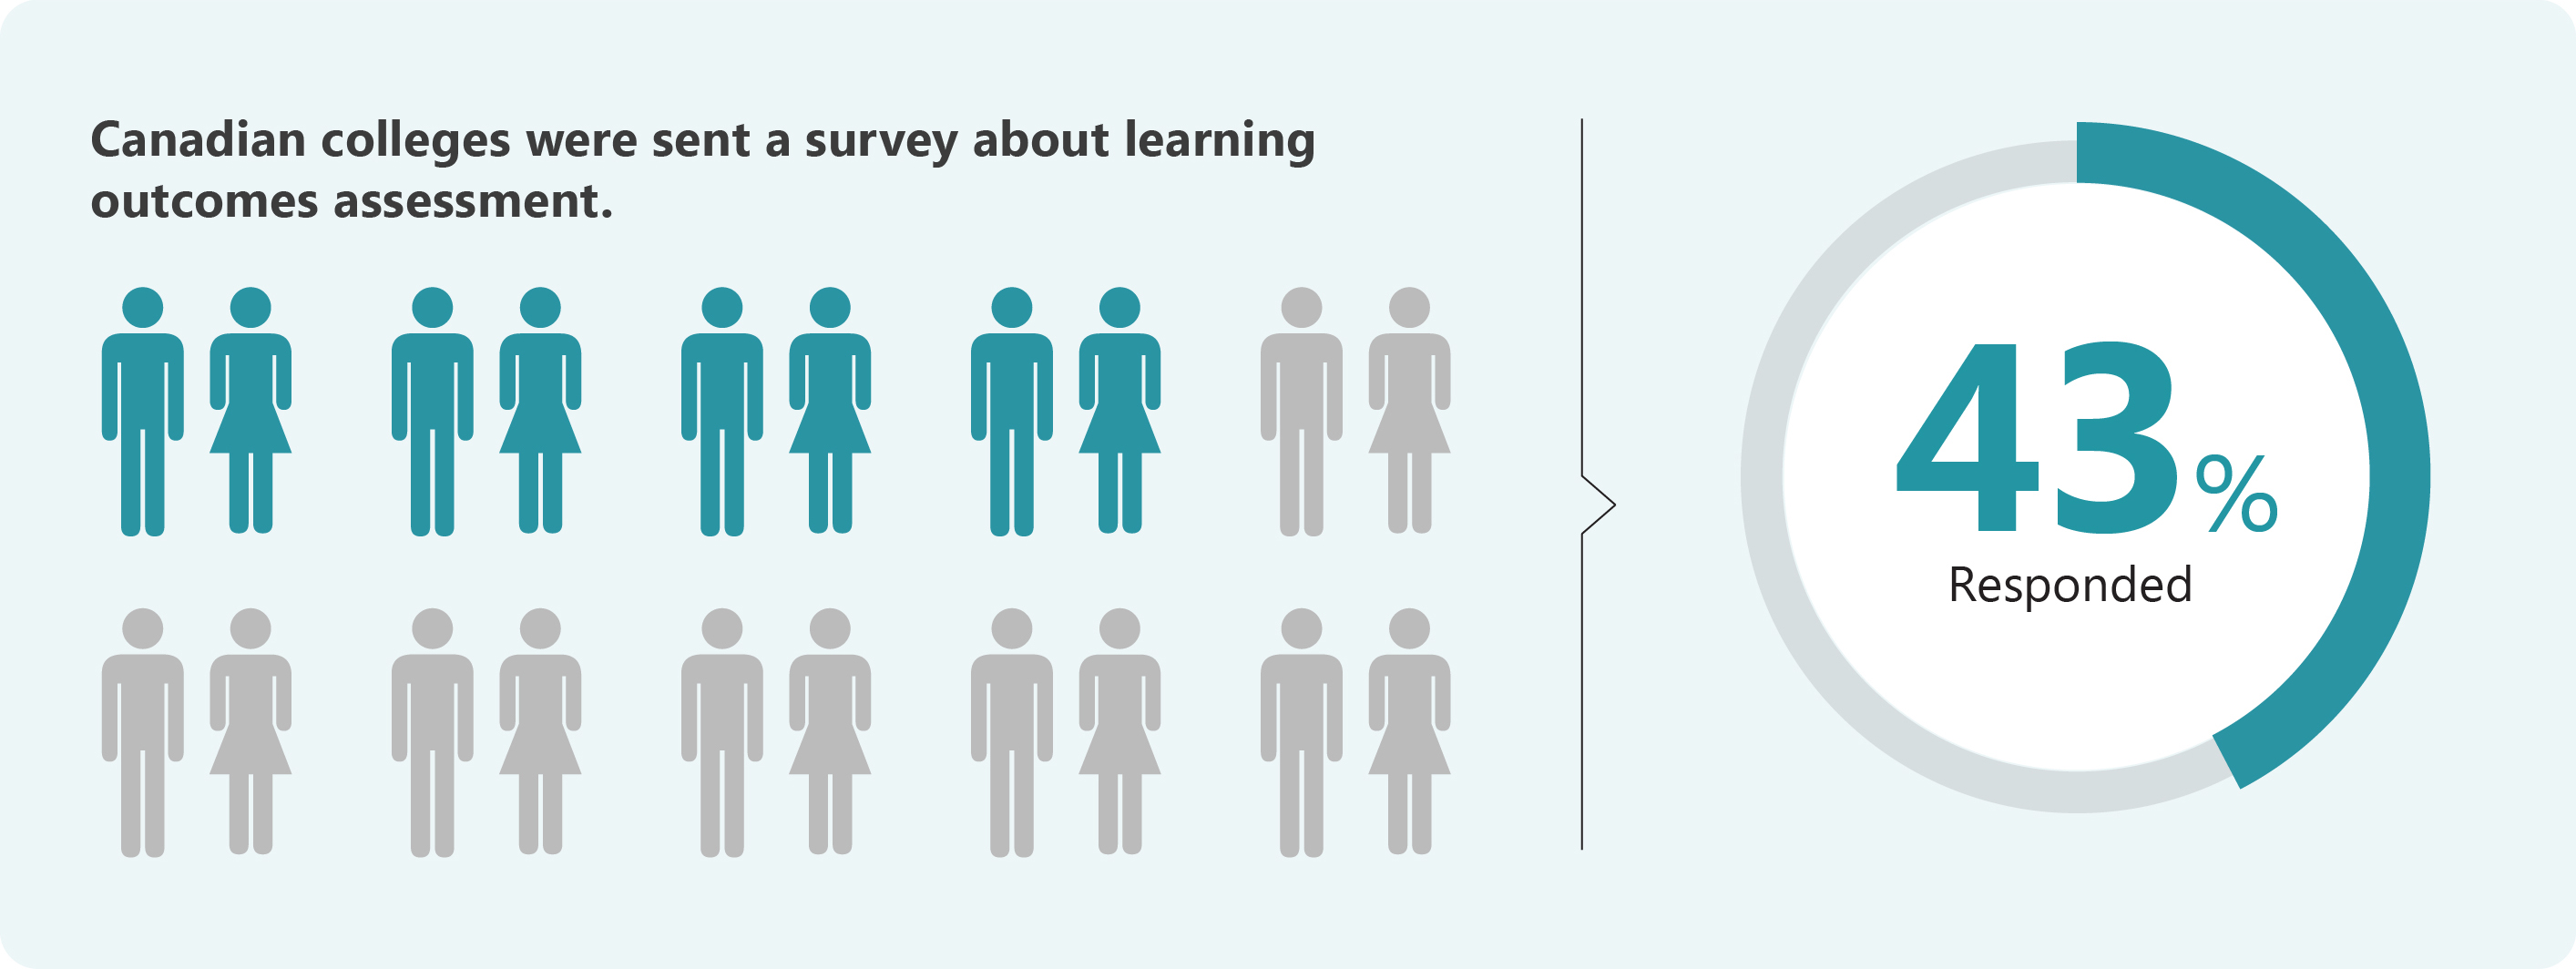 Canadian colleges were sent a survey about learning outcomes assessment - 43% responded.